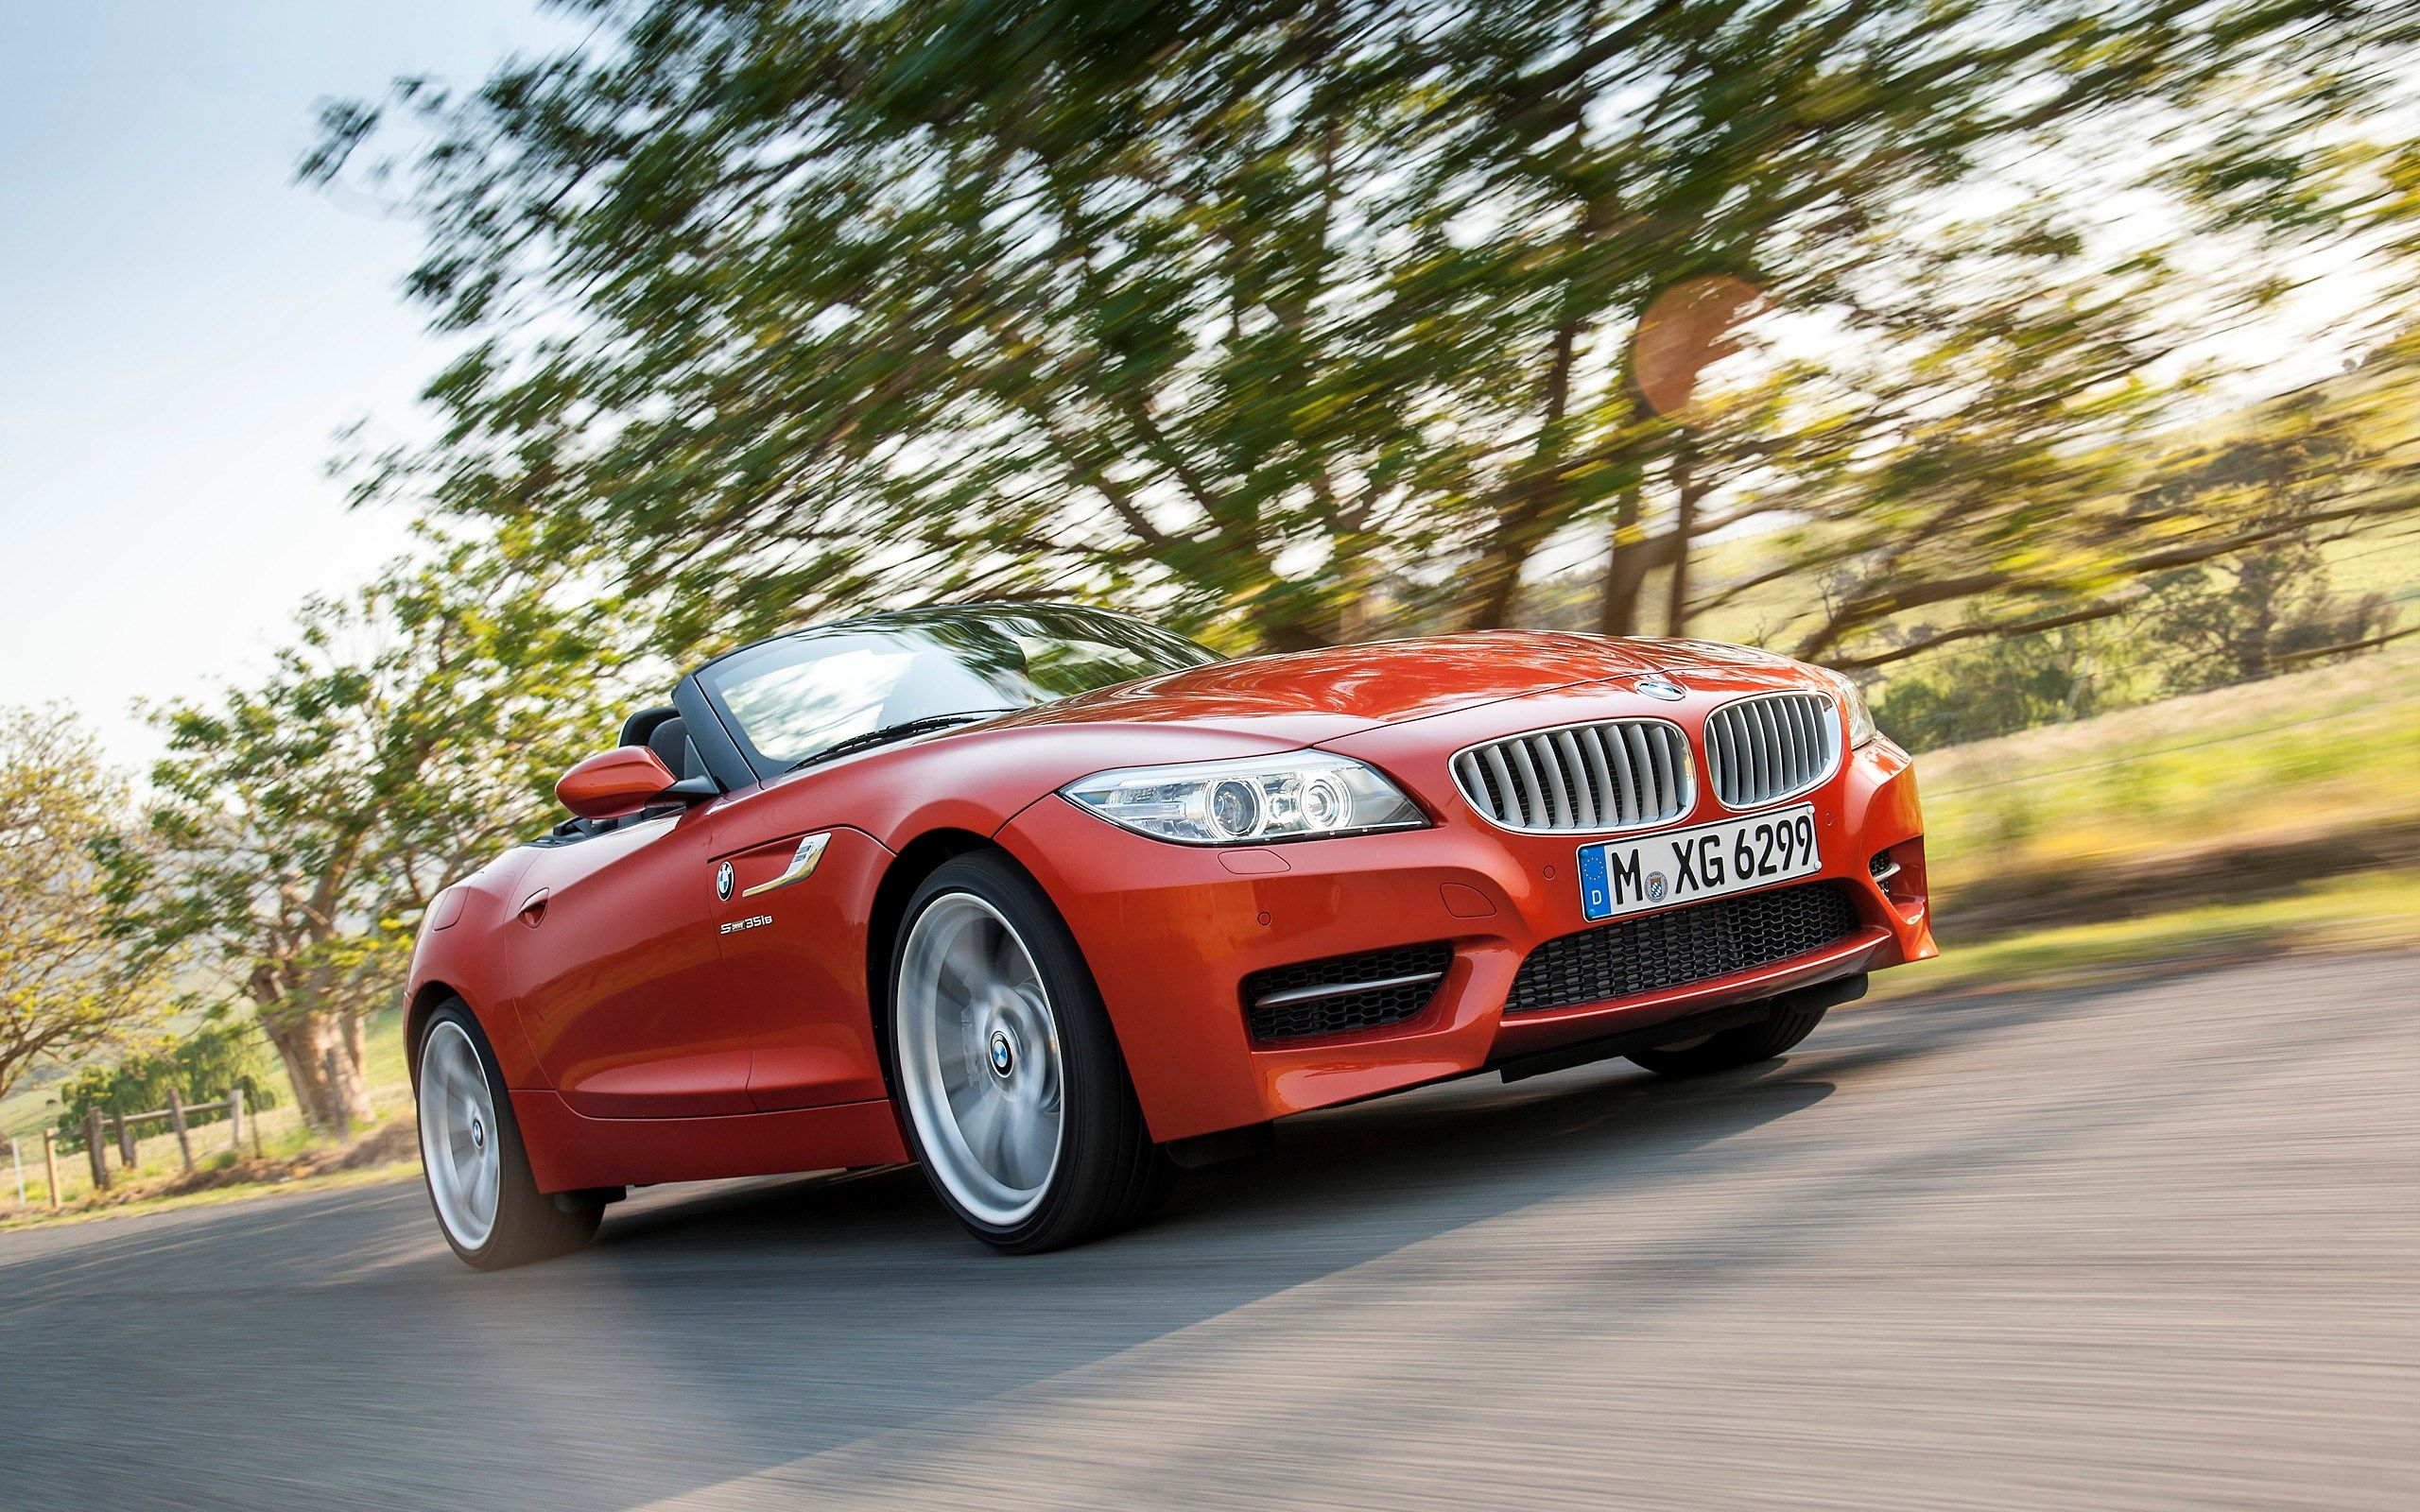 Partners bmw and toyota have announced they are moving forward with the development of a new sports car